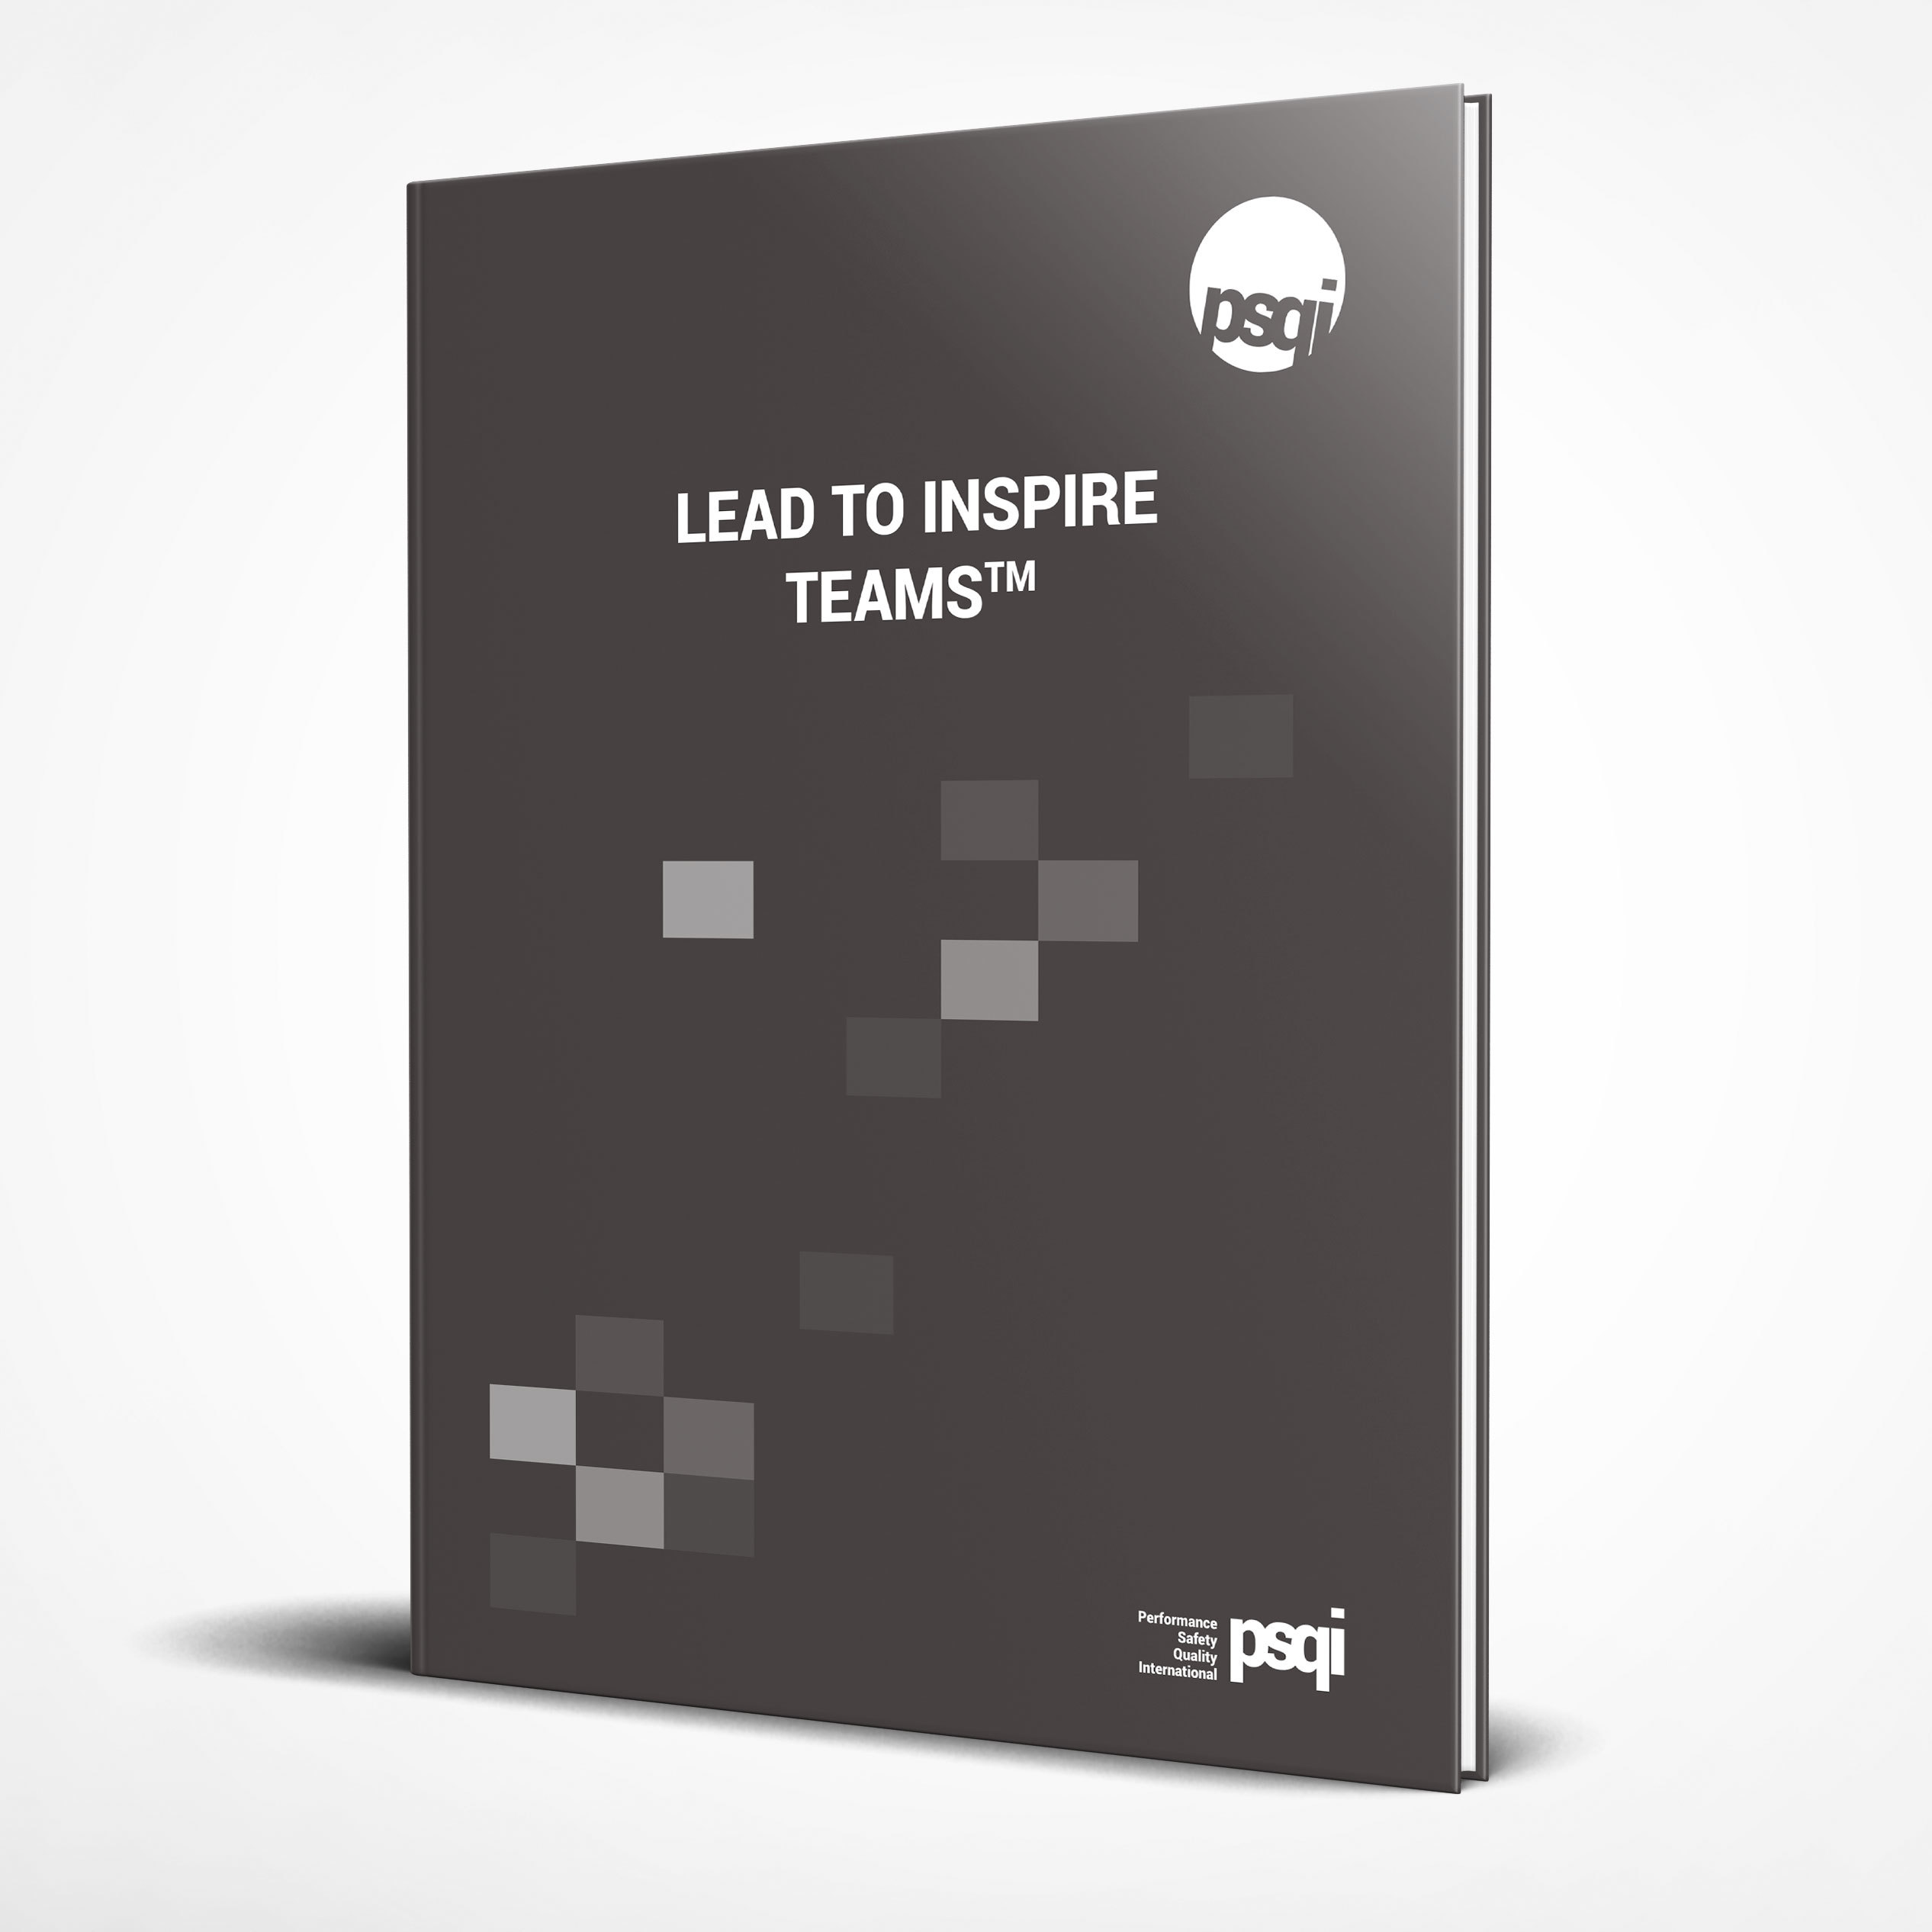 Lead_to_inspire_teams-cover